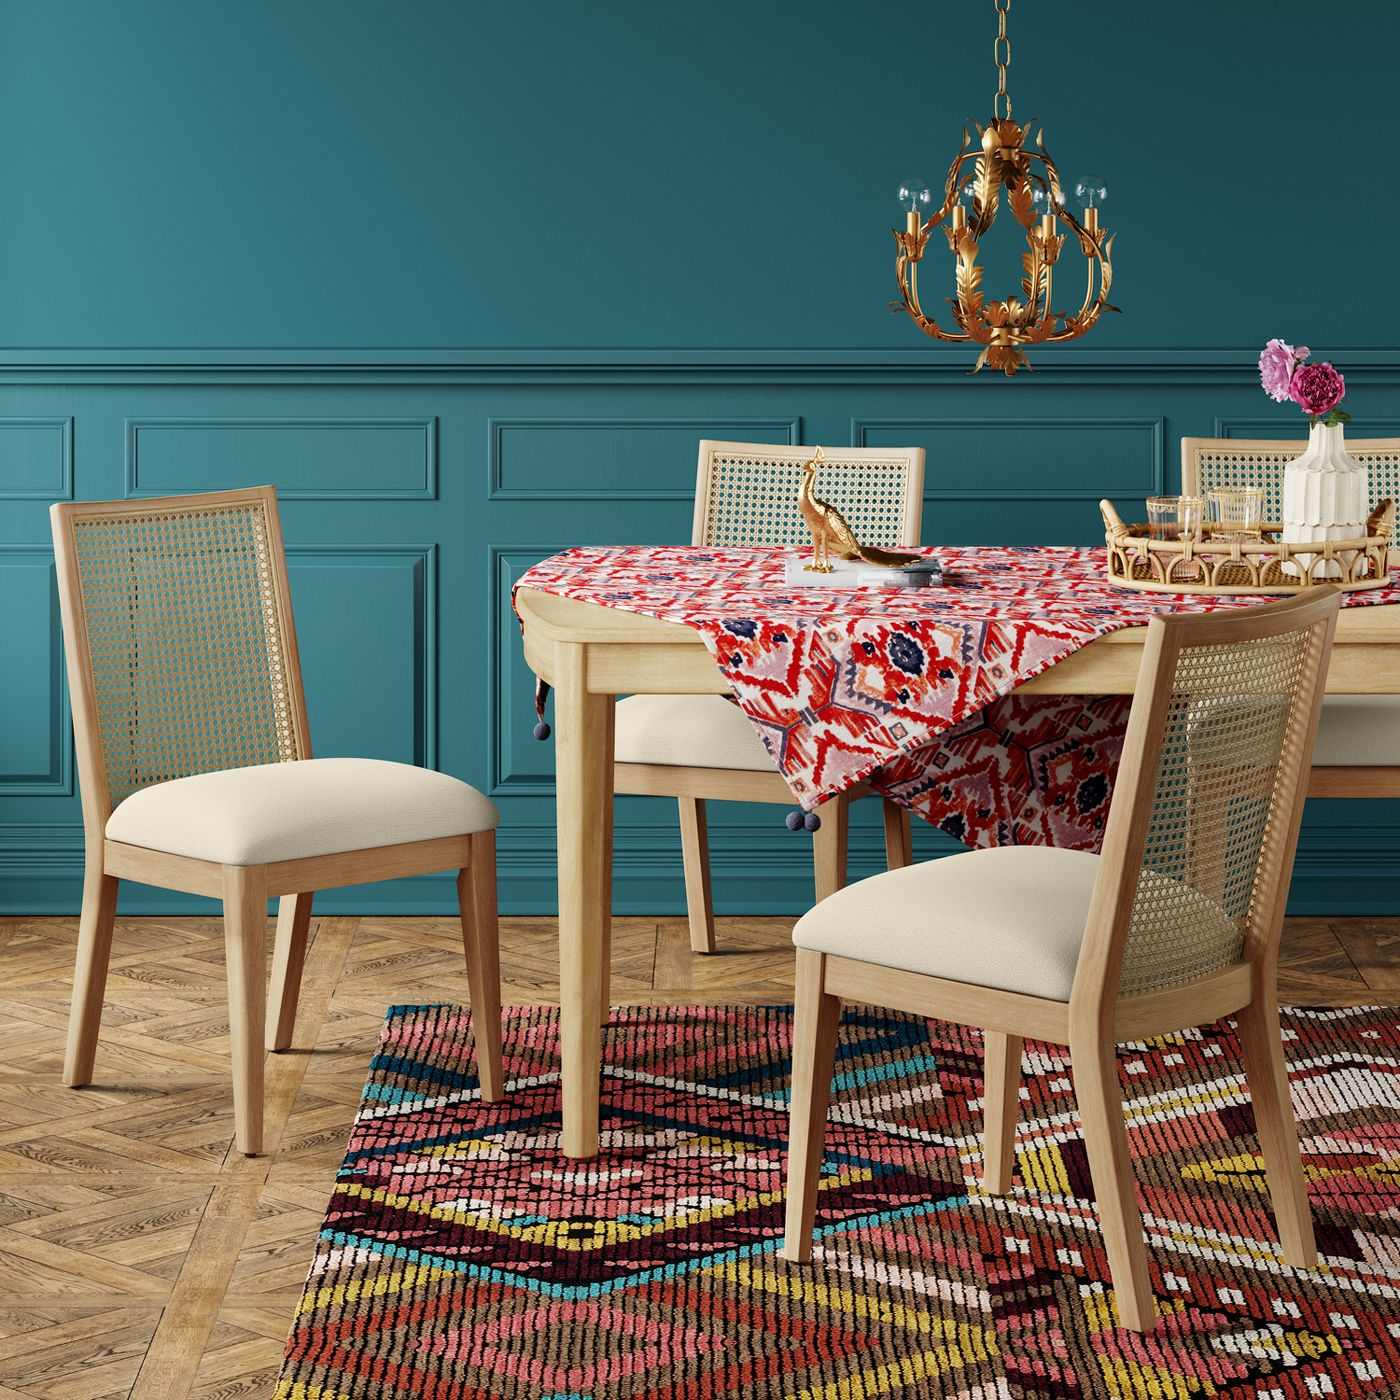 Corella Cane and Wood Dining Chair - Opalhouse™ - image 2 of 5